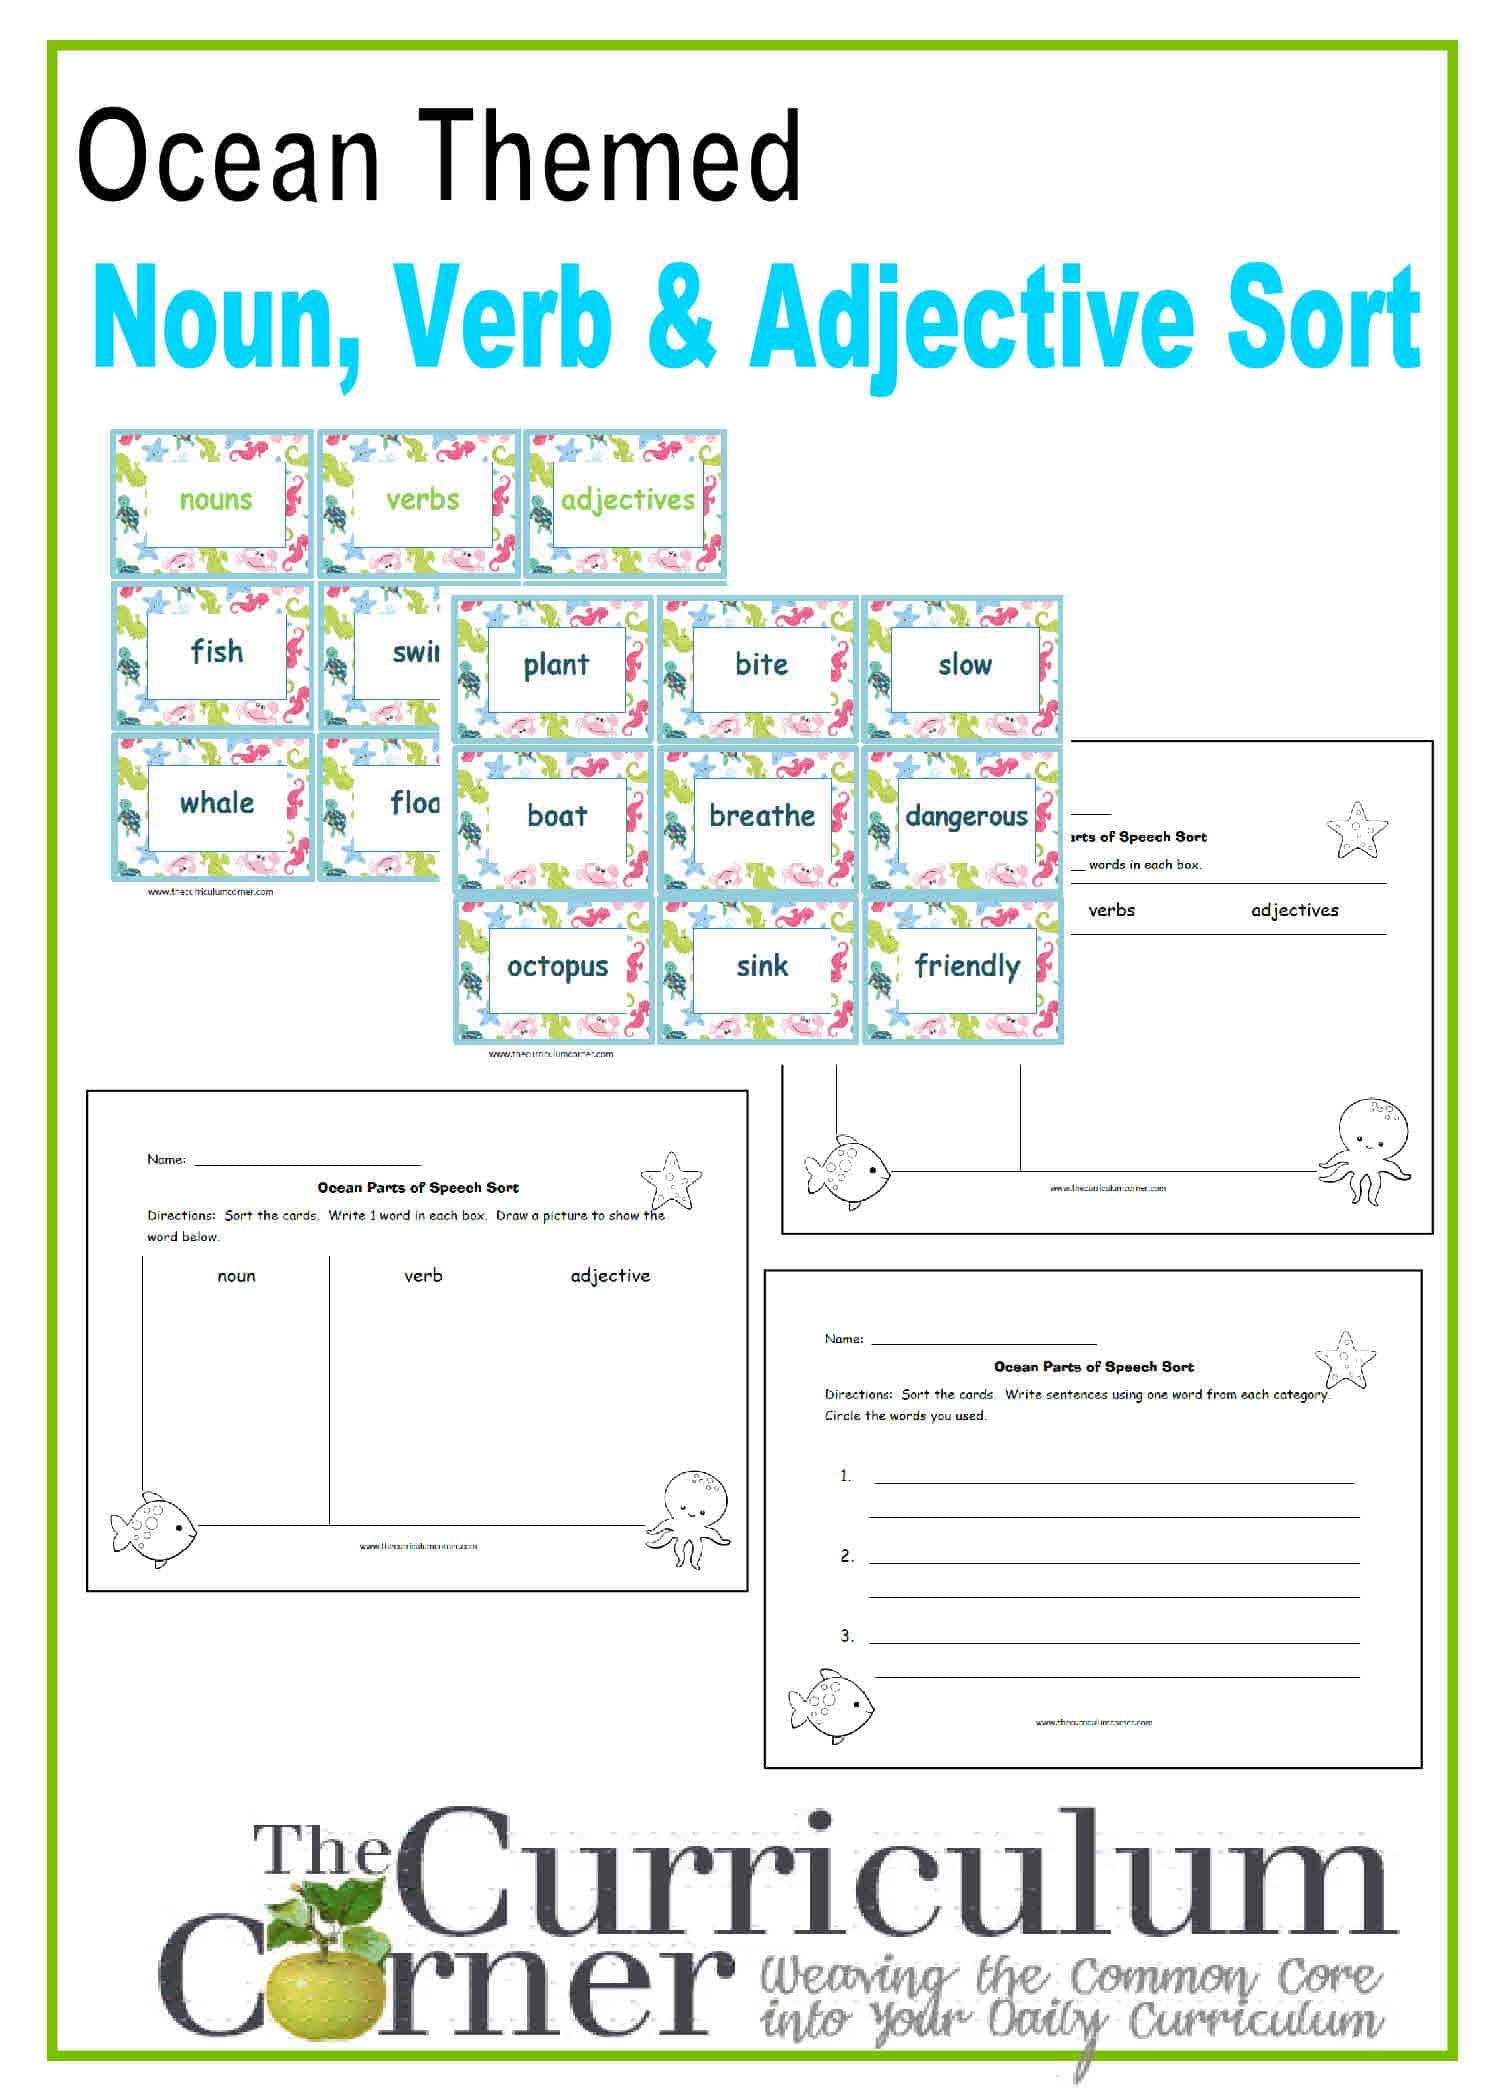 Ocean Themed Noun, Verb, Adjective Sort